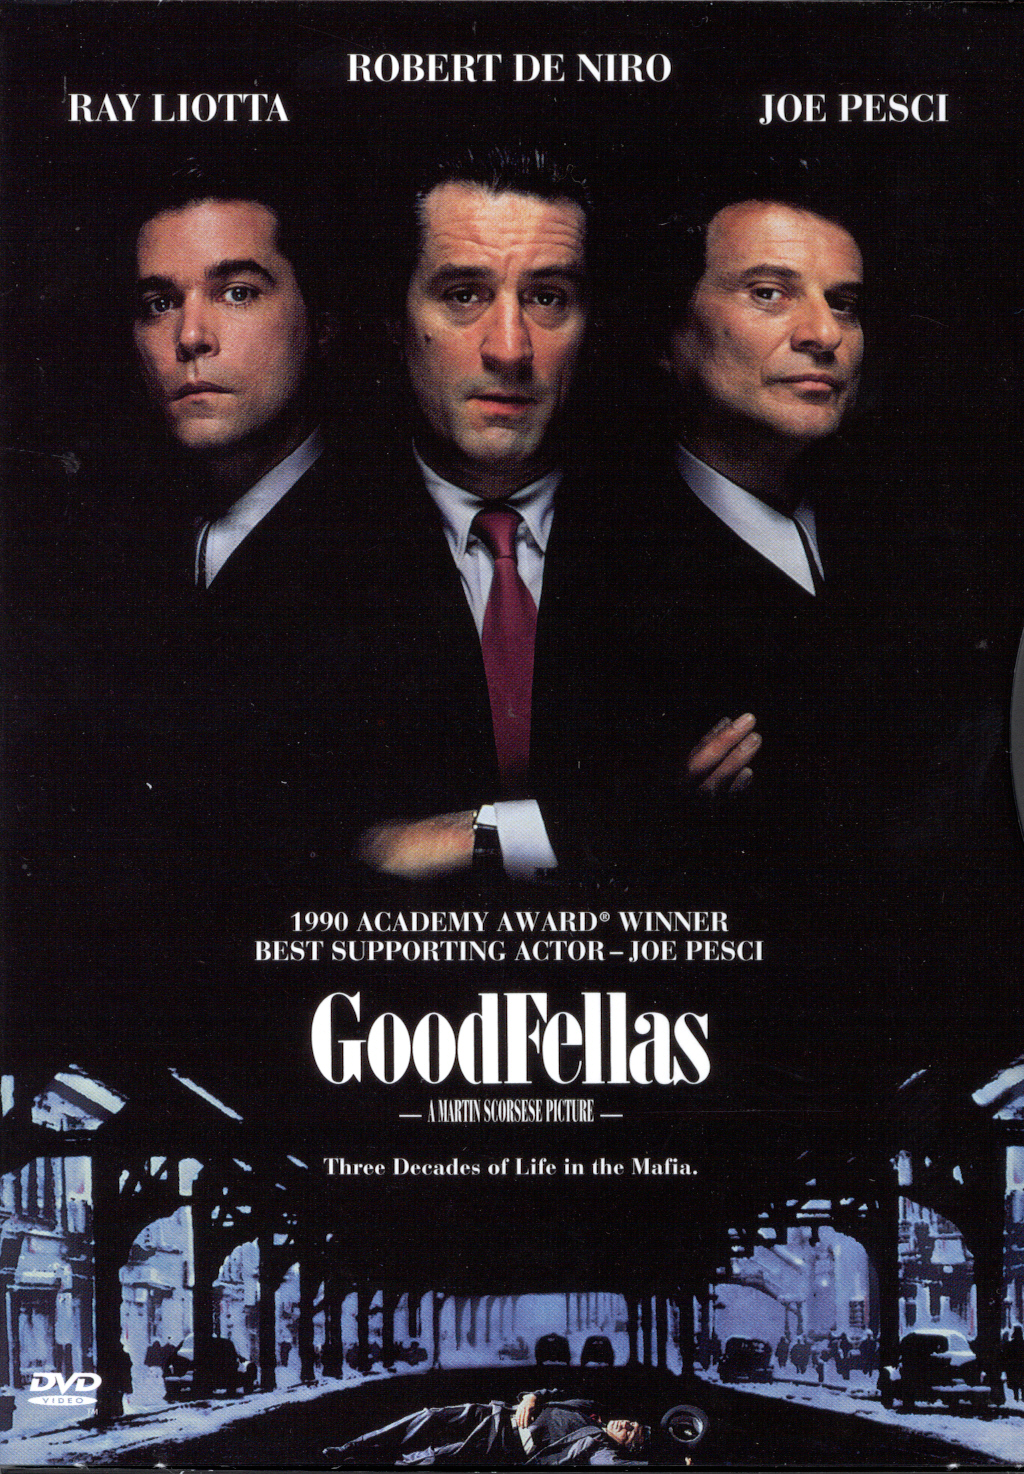 a review of goodfellas a movie by martin scorsese The jarring opening sequence of martin scorsese's goodfellas plunges the audience smack into the lethal fast-track world of the professional mobster.